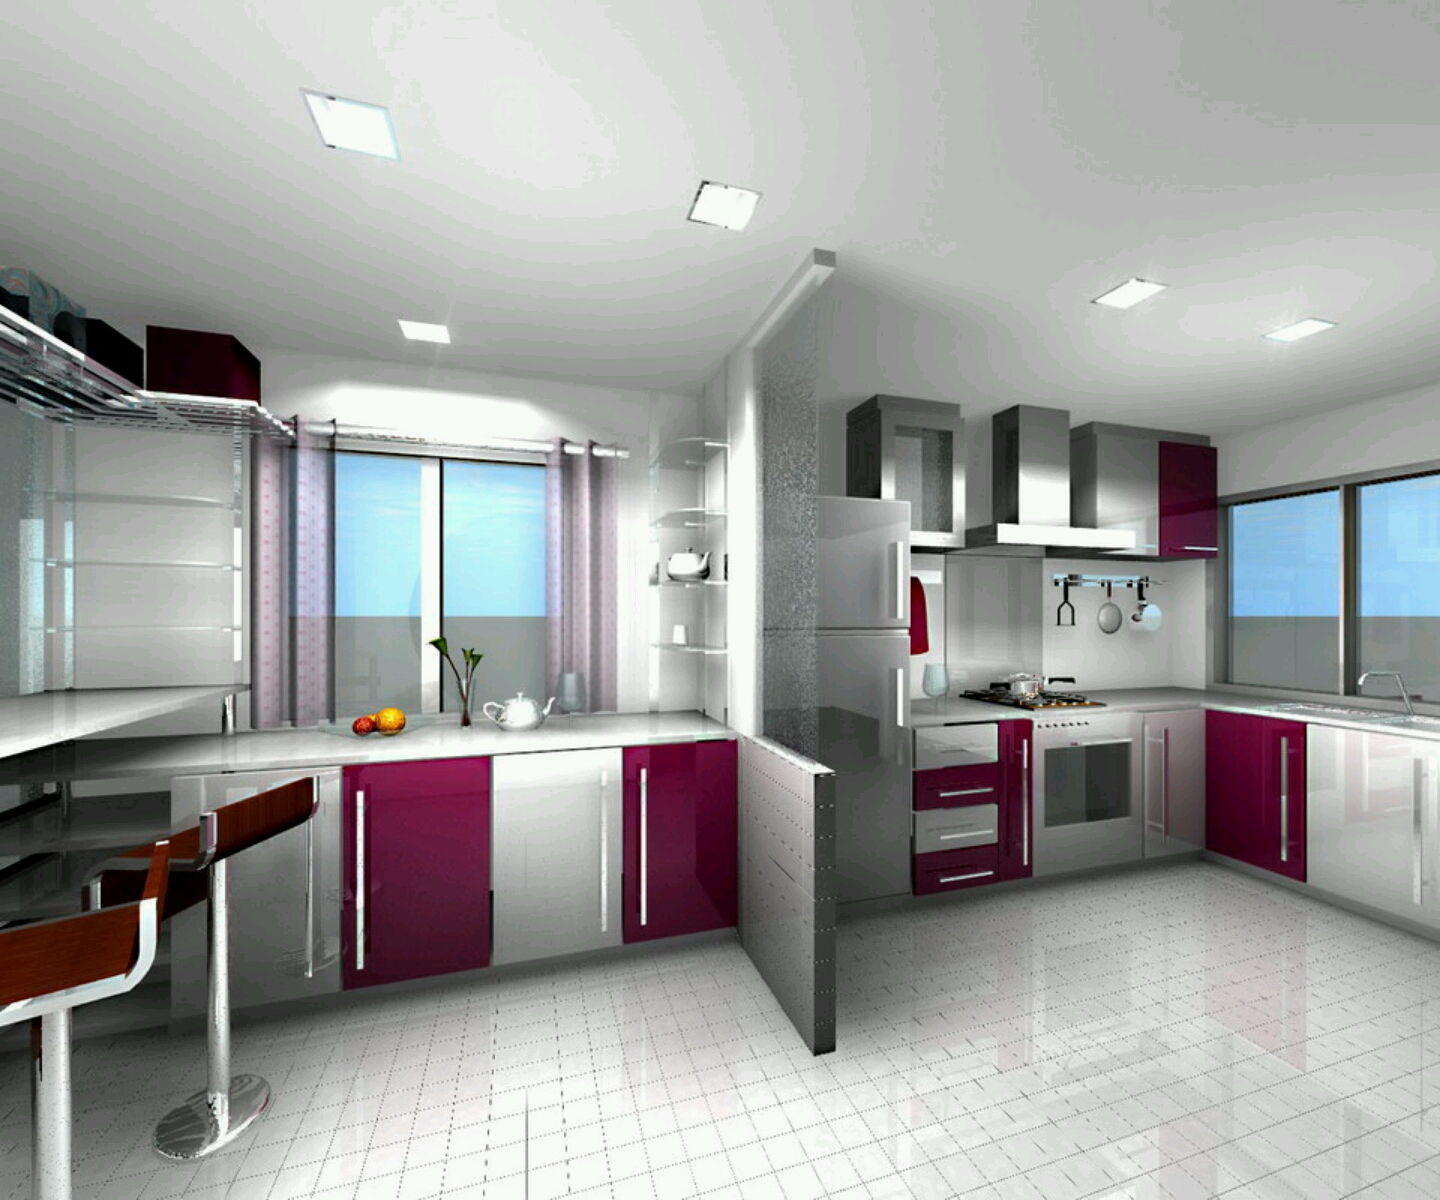 New home designs latest.: Modern homes ultra modern ... on Modern Kitchen Design  id=77714